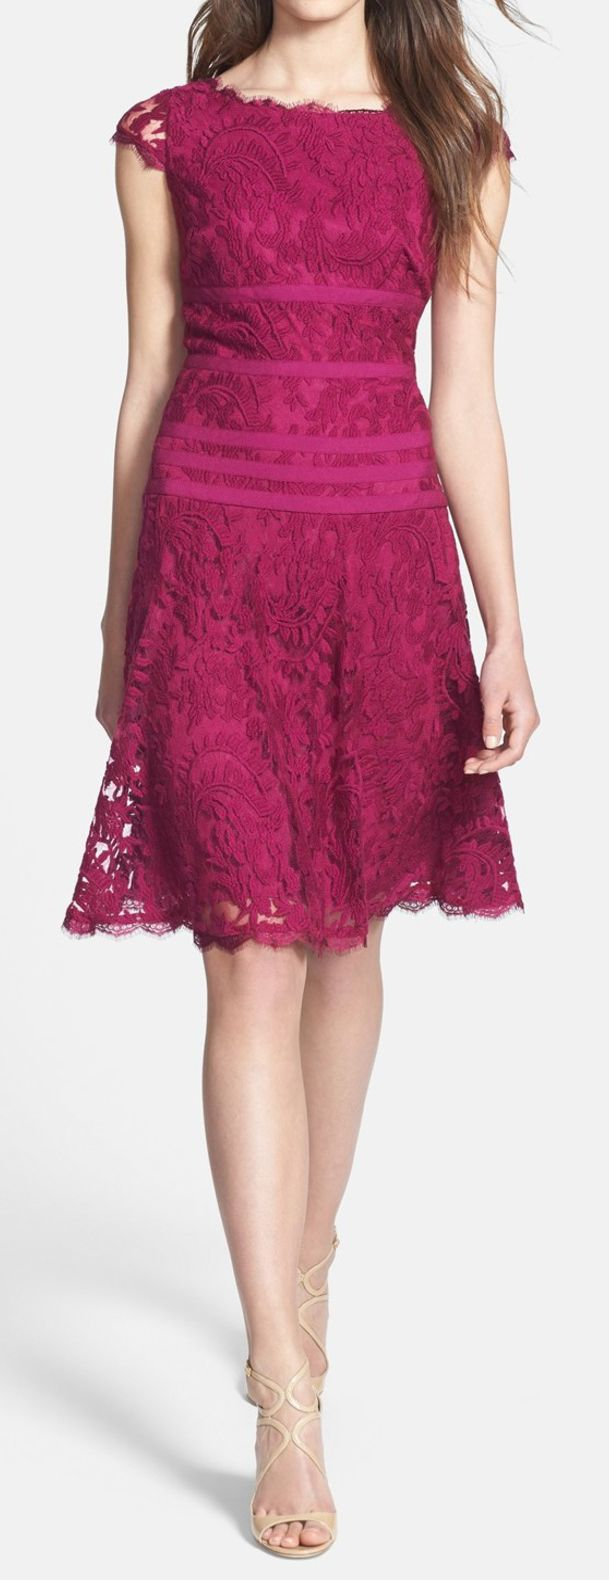 Berry Lace Dress | Look Party | Pinterest | Color bordo, De encaje y ...